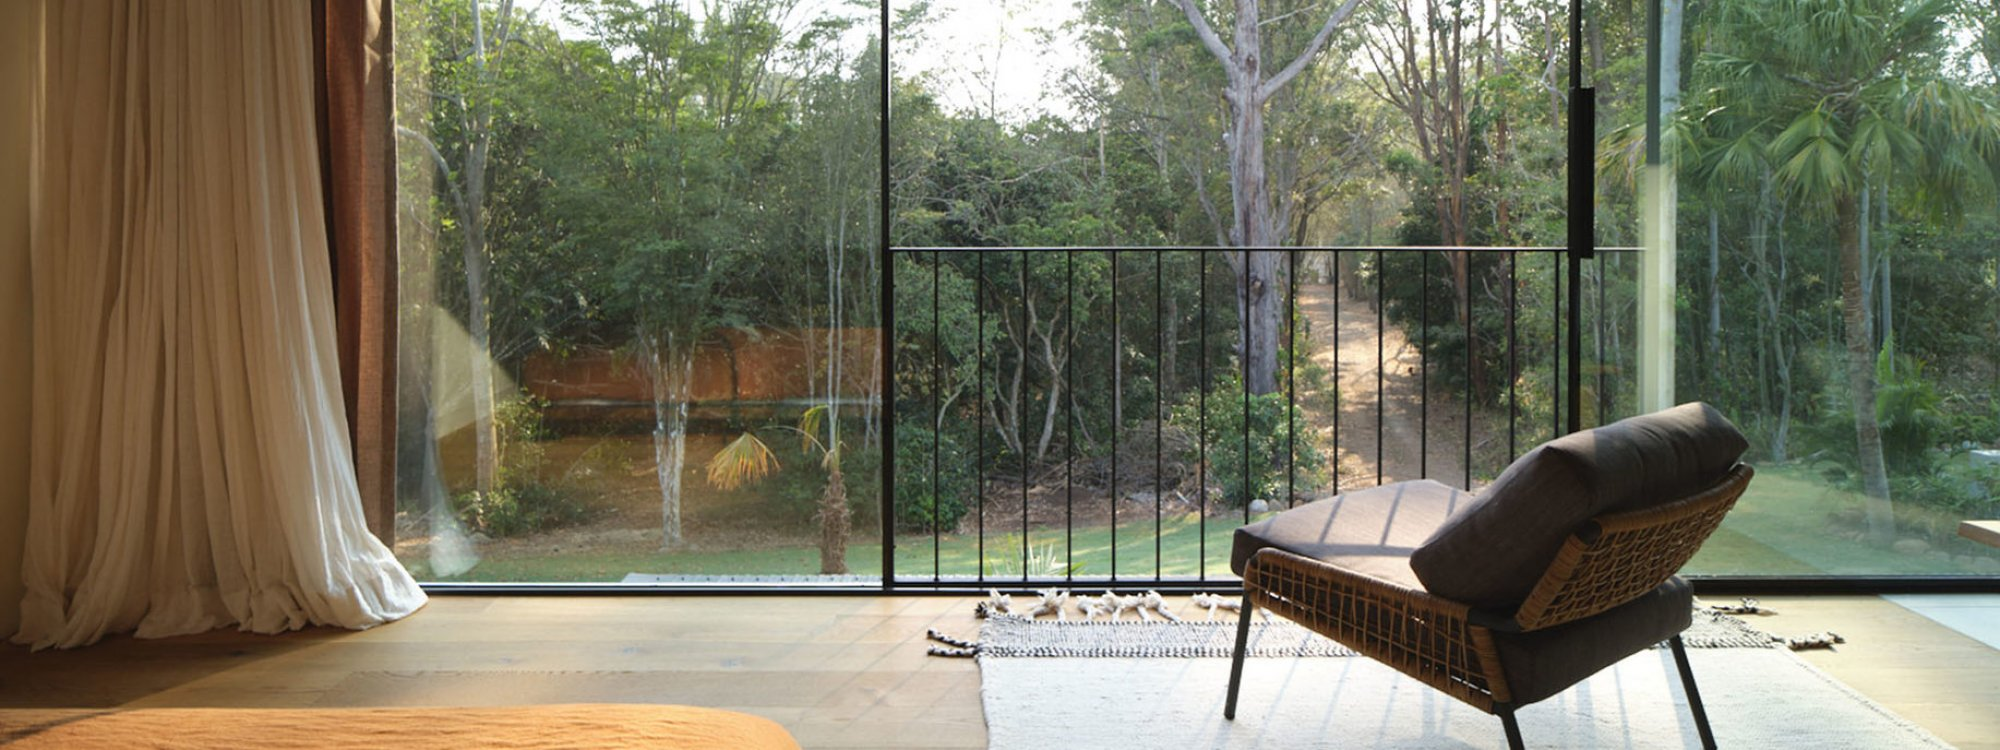 Soma - Byron Bay - View from Upstairs Bedroom towards Yoga Dome